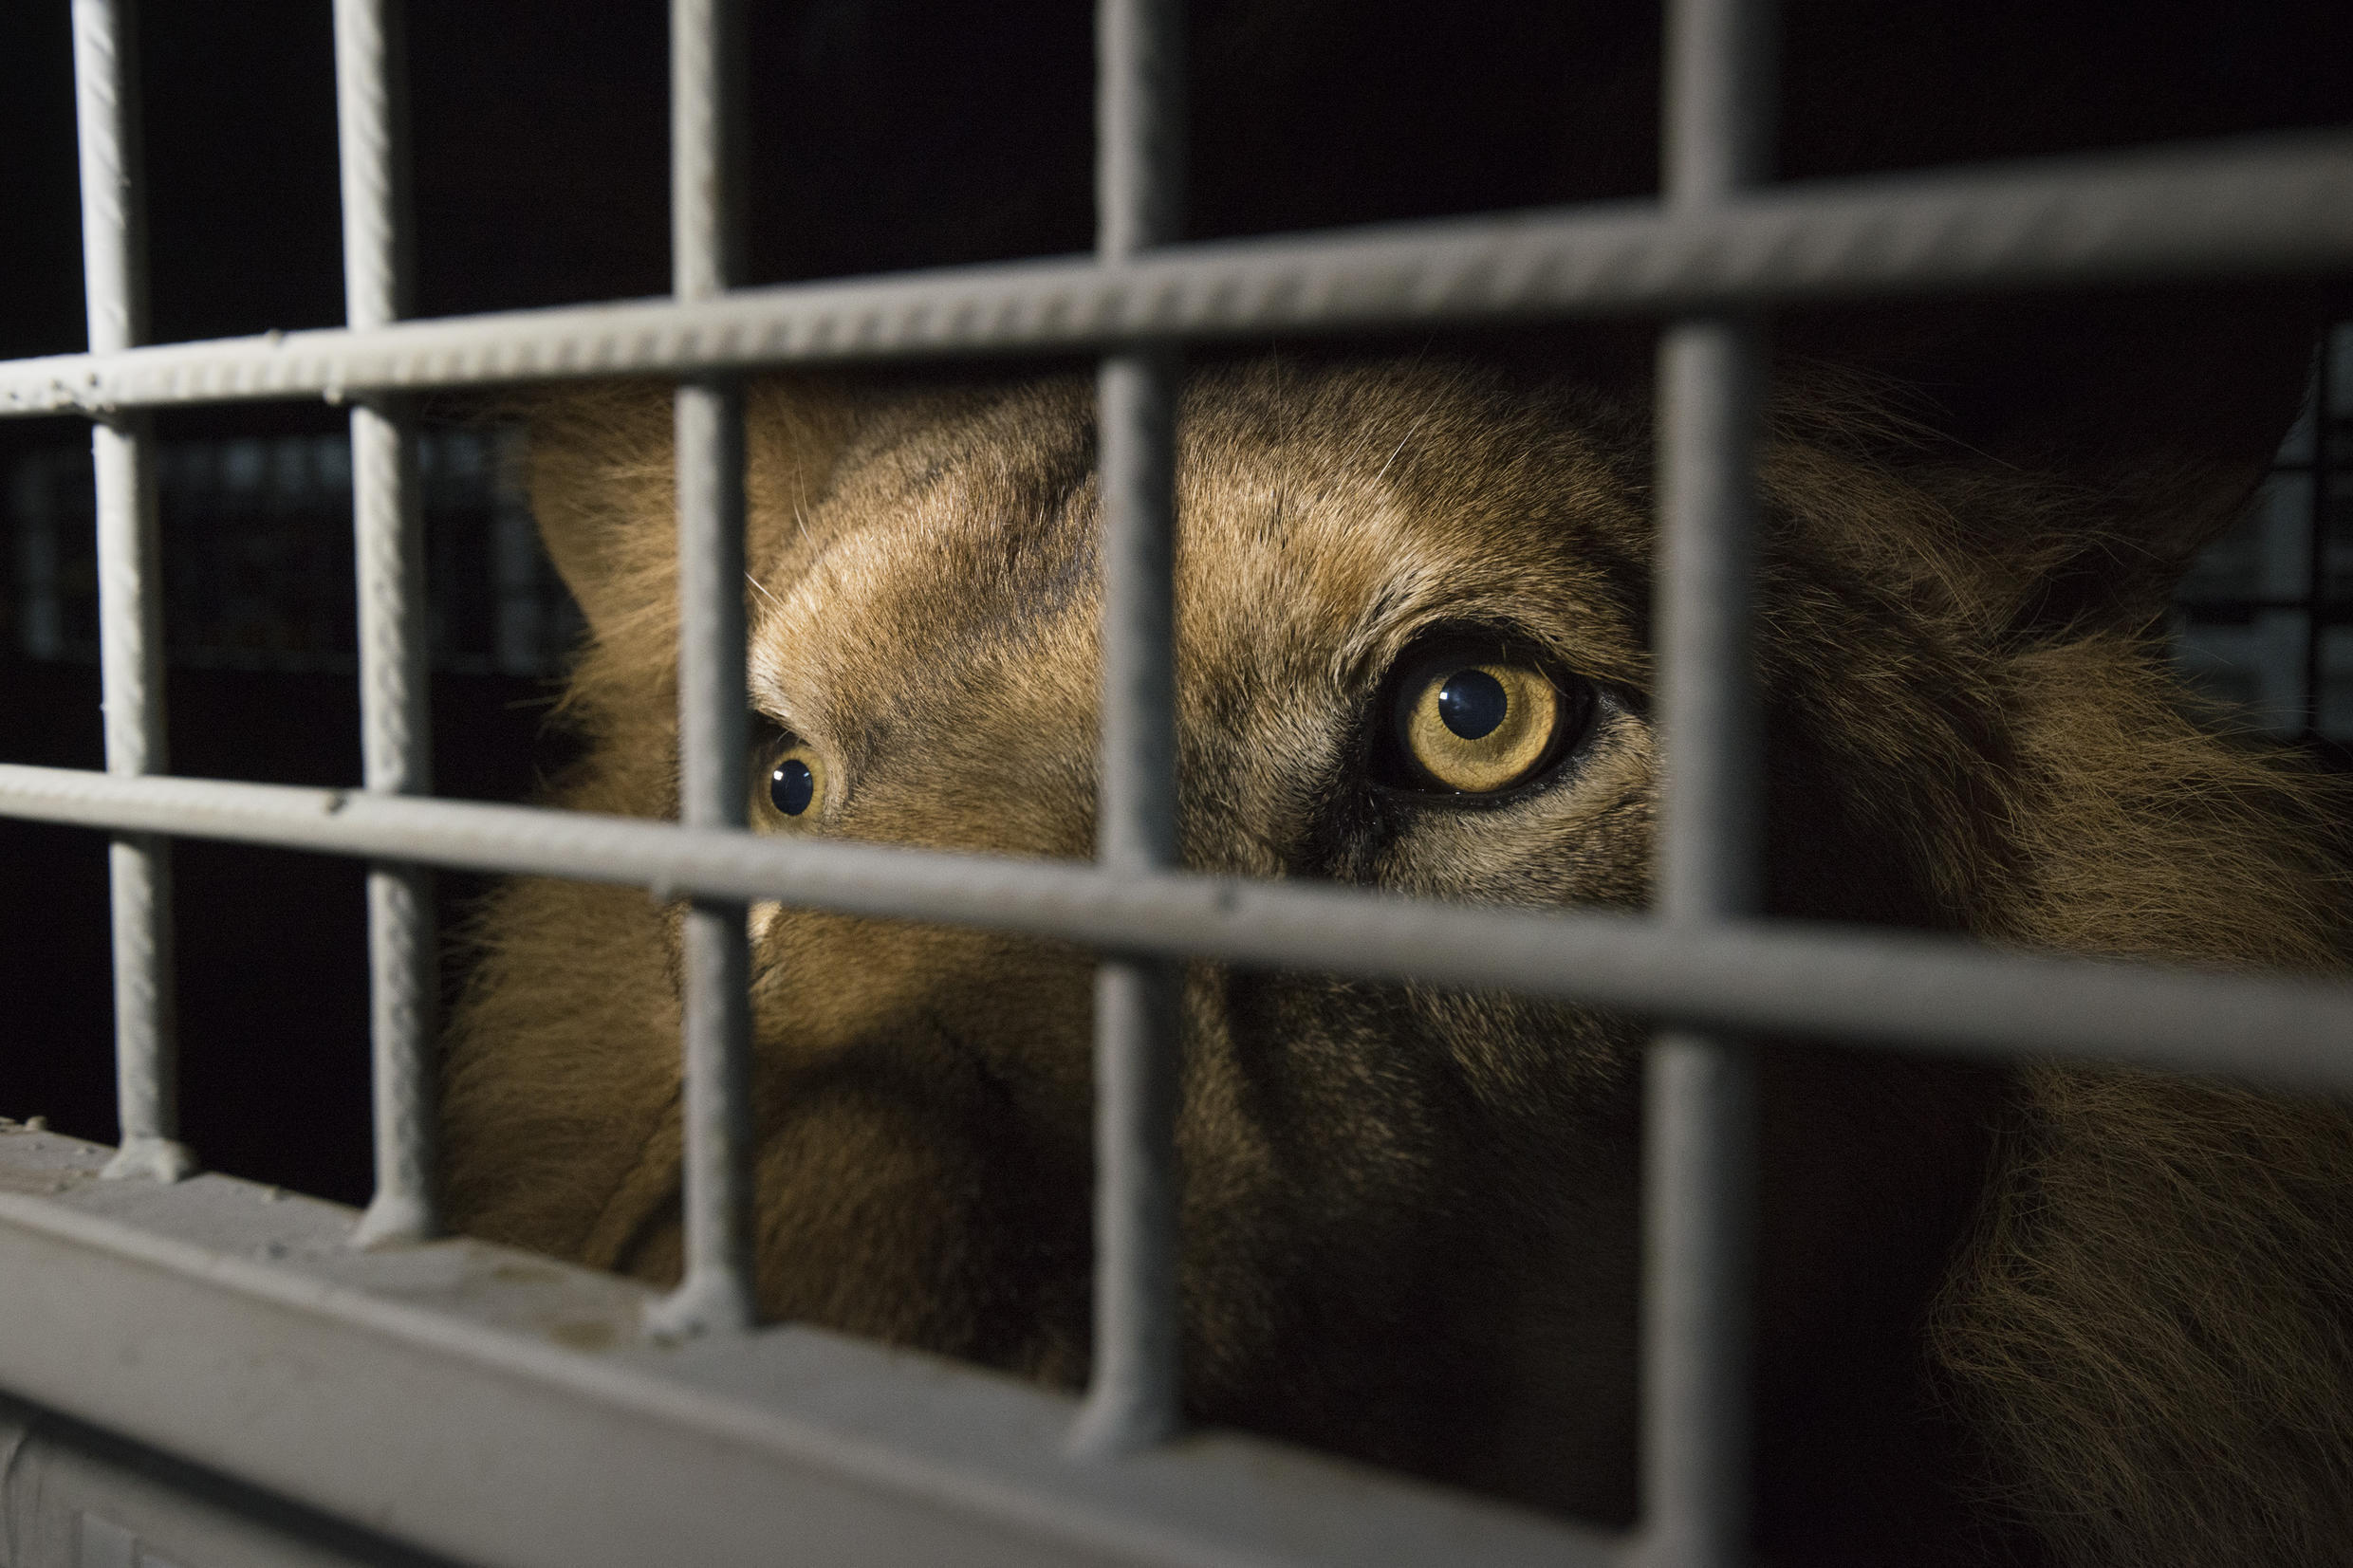 The practice of hunting lions raised in captivity has long been controversial in South Africa, where a large number of animals are confined to pens ringed with electric fences